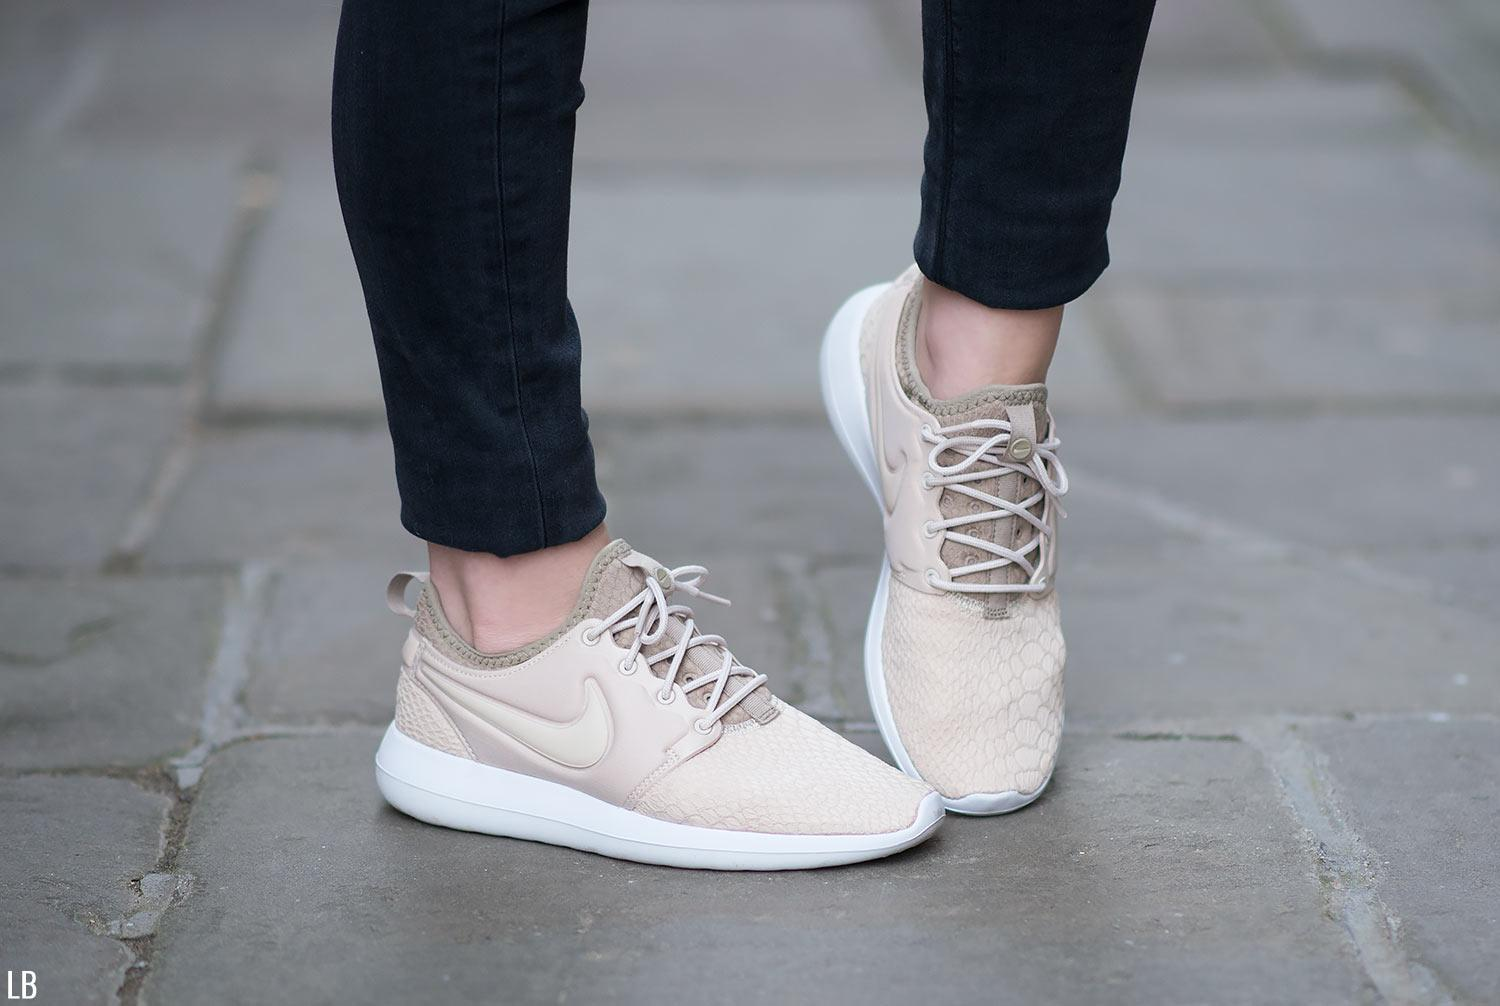 fb7a386b4b23 Buy these Nike Roshe Trainers here at ASOS and here at Sarenza!